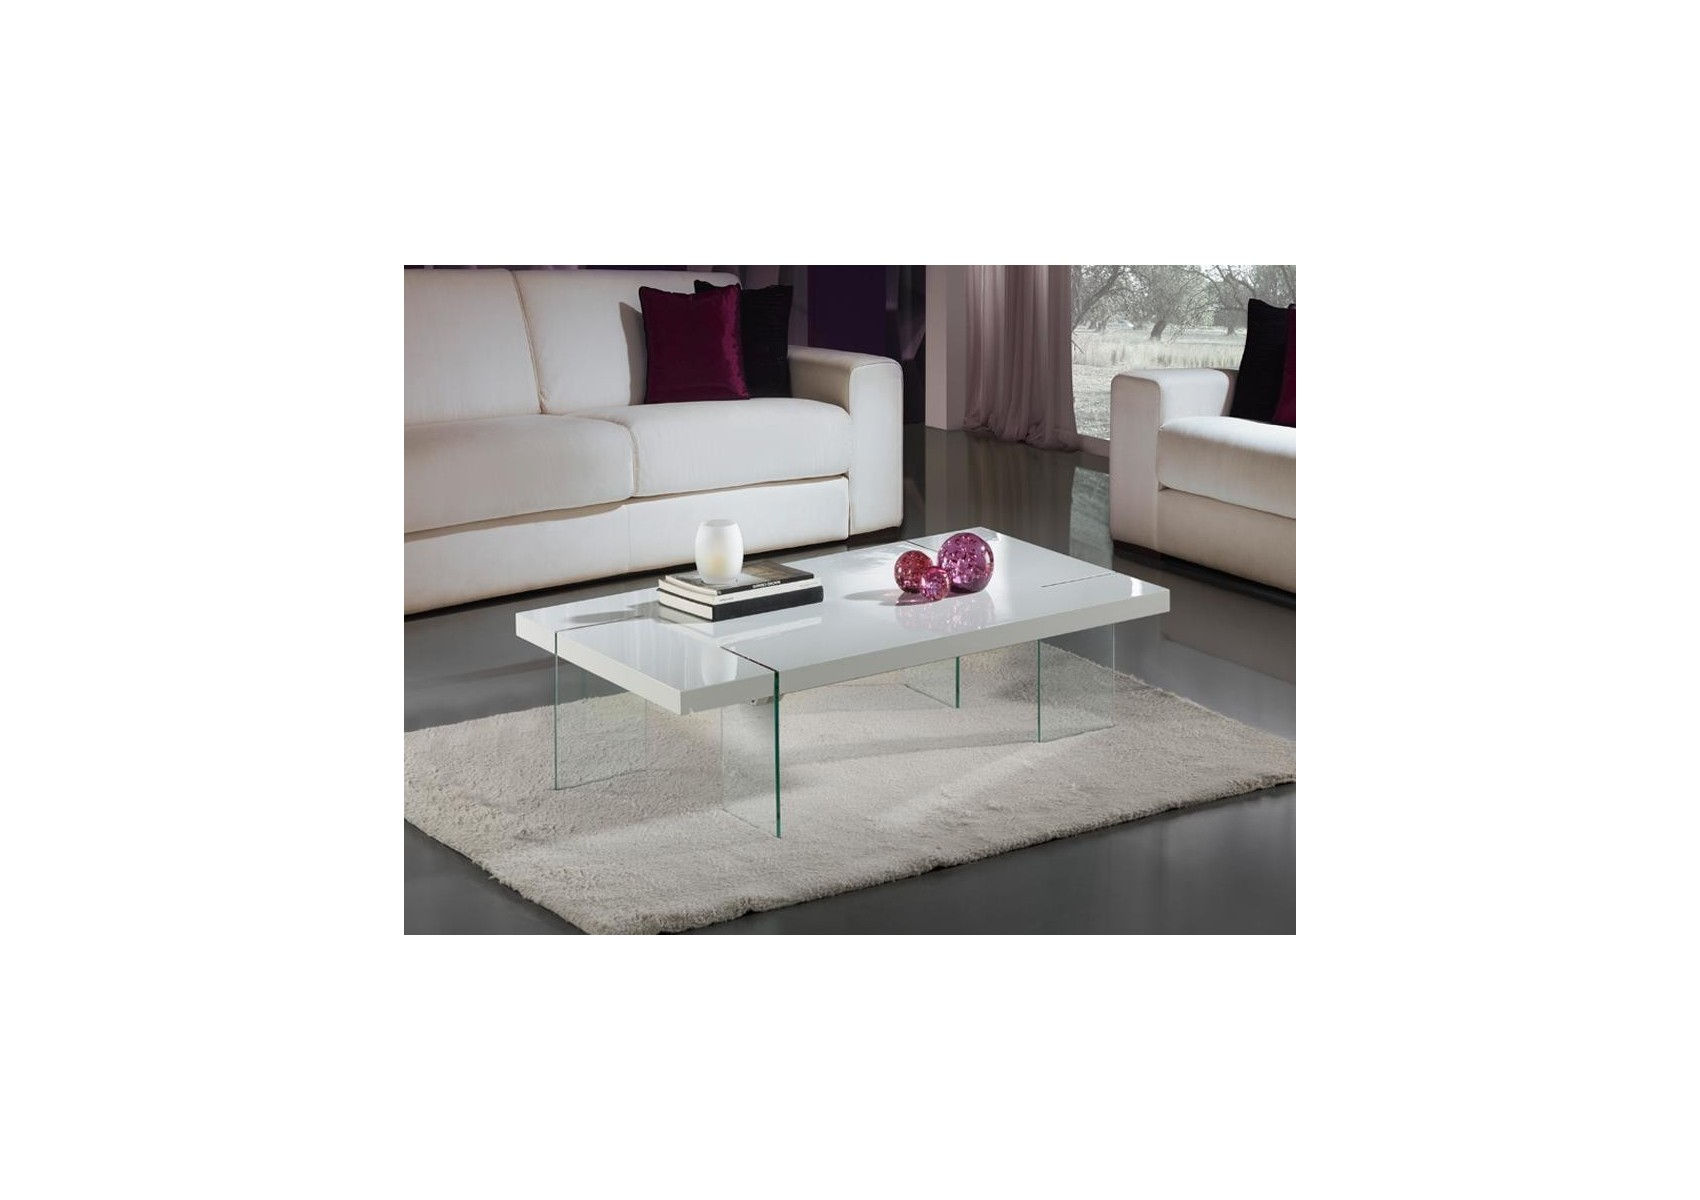 Table basse design blanc table basse eslov blanc laqu for Table basse noir laque